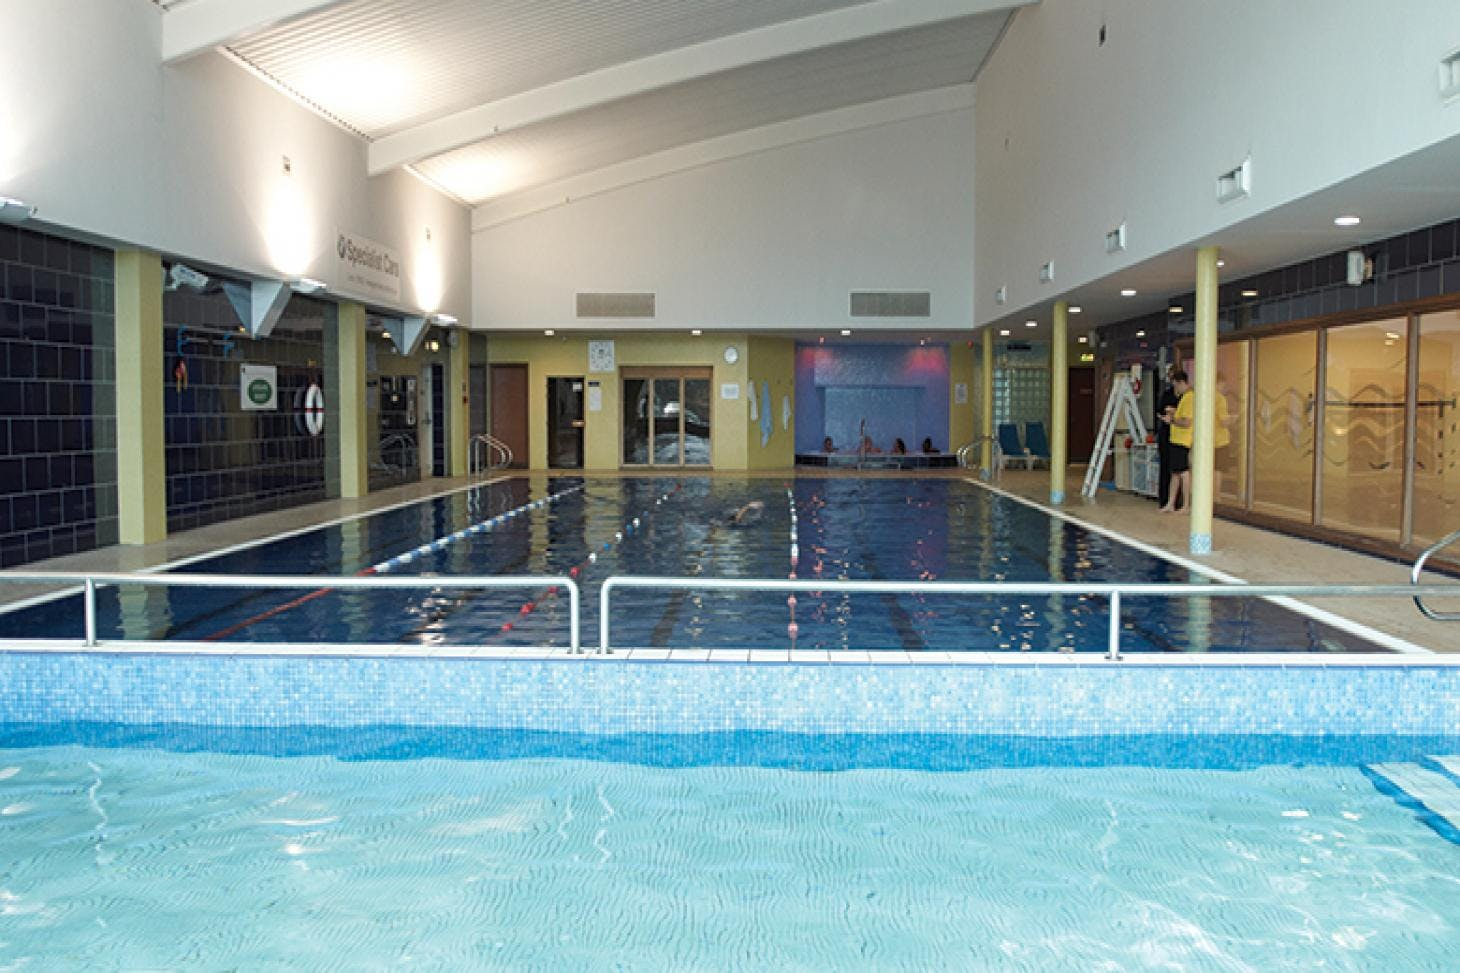 David Lloyd Luton Indoor swimming pool